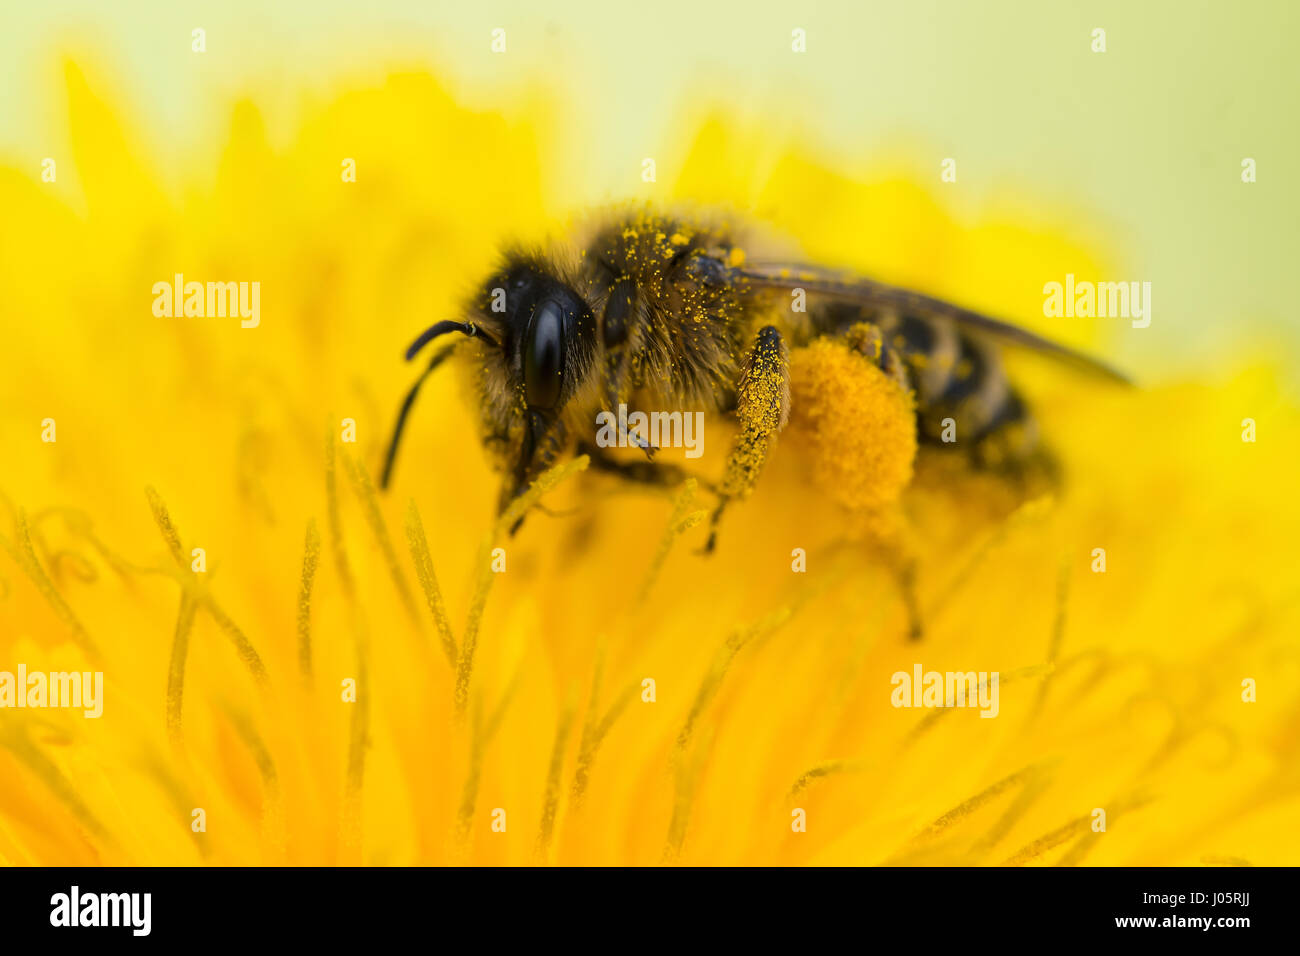 Close up on a honey bee (Apis mellifera) collecting pollen from a dandelion (taraxacum officinale) - Stock Image